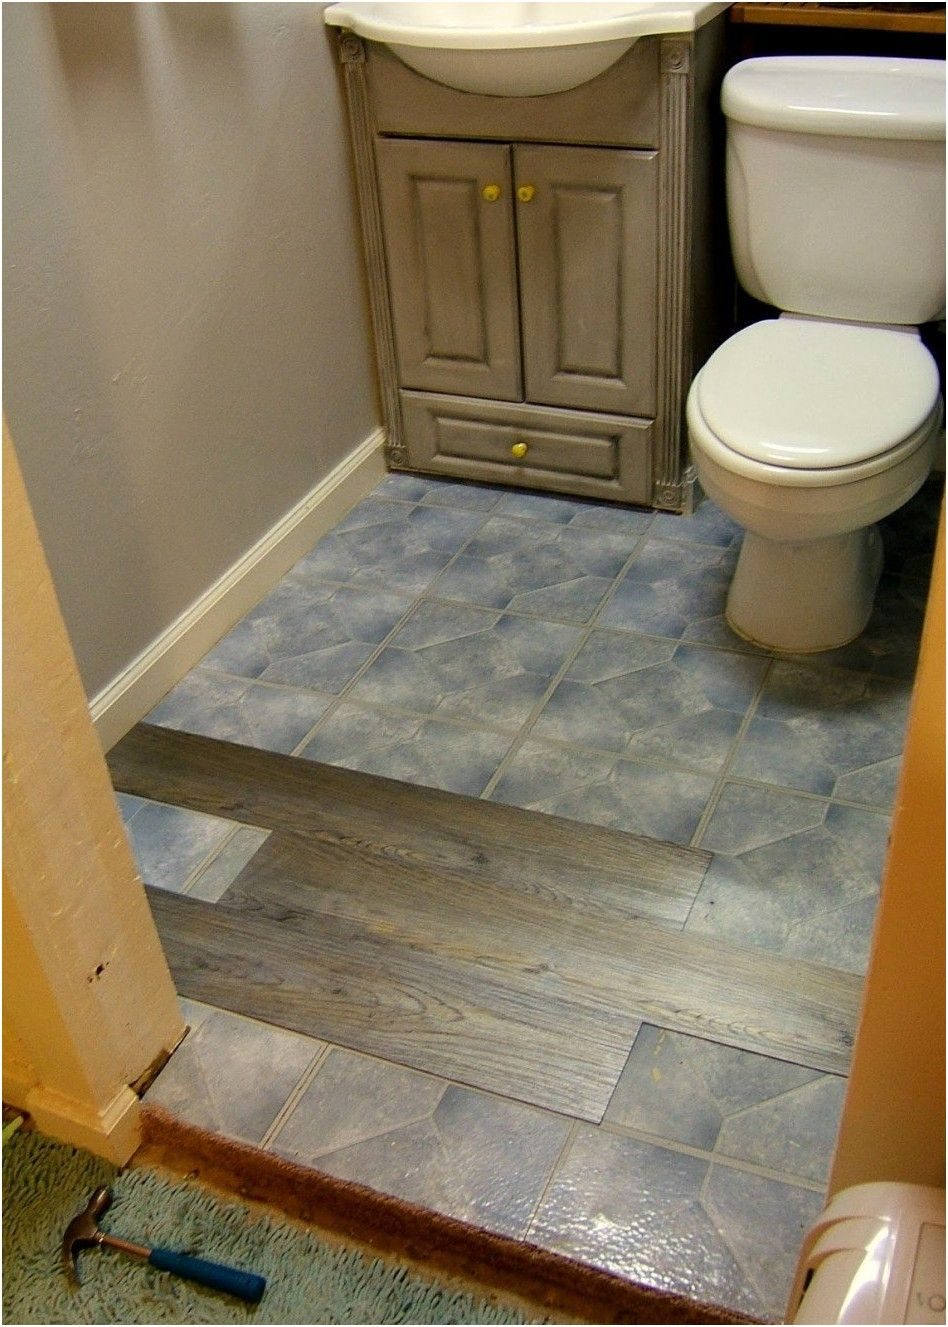 Interior installing floating vinyl plank flooring over ceramic interior installing floating vinyl plank flooring over ceramic from replacing vinyl flooring with tile in bathroom dailygadgetfo Choice Image